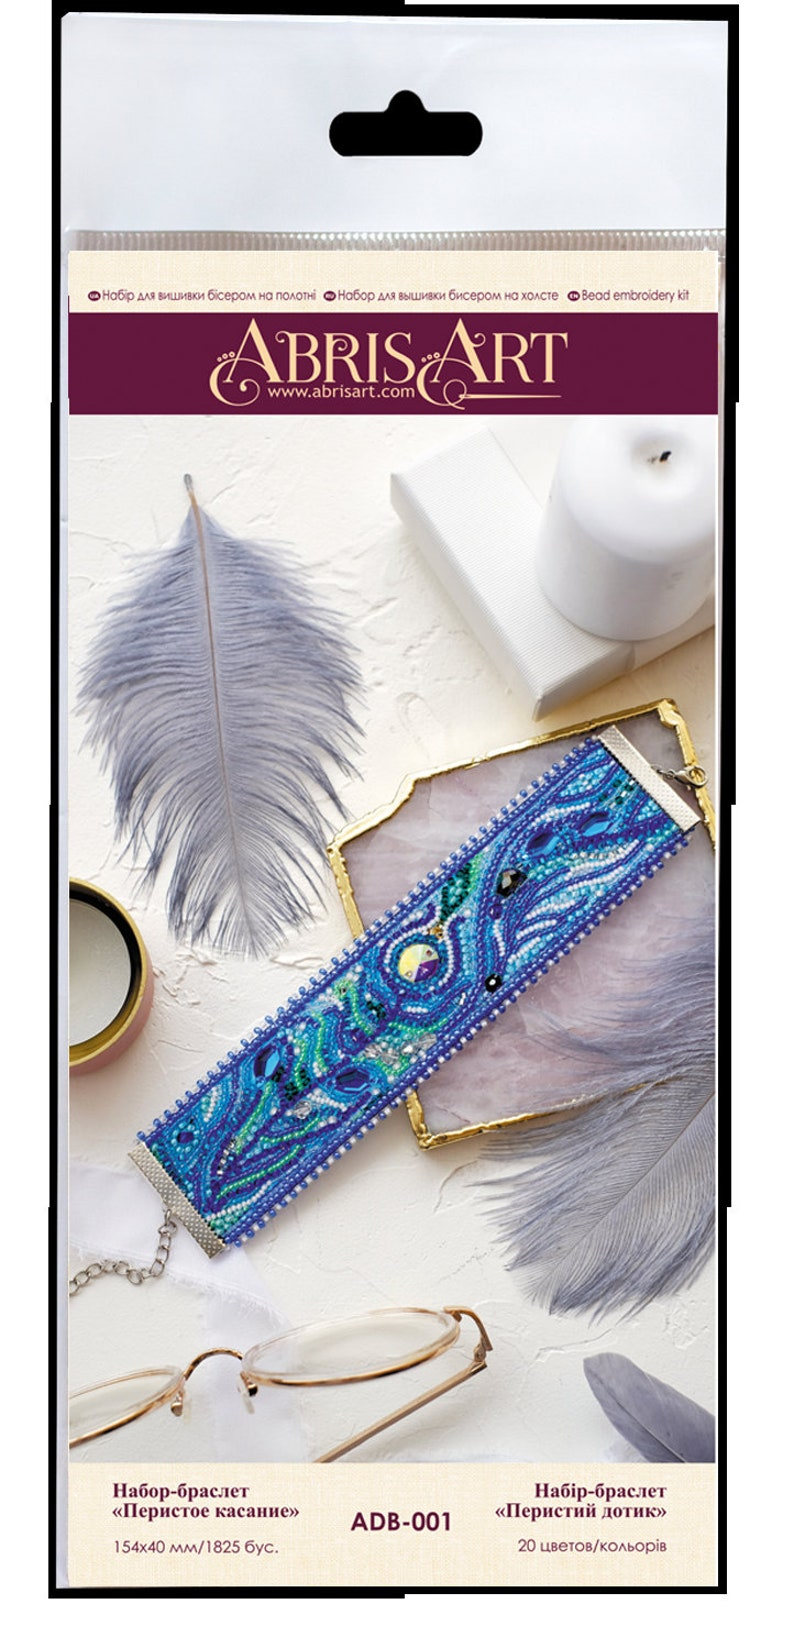 jewerly making Feather touch handmade bead embroidery kit for creativity bracelet